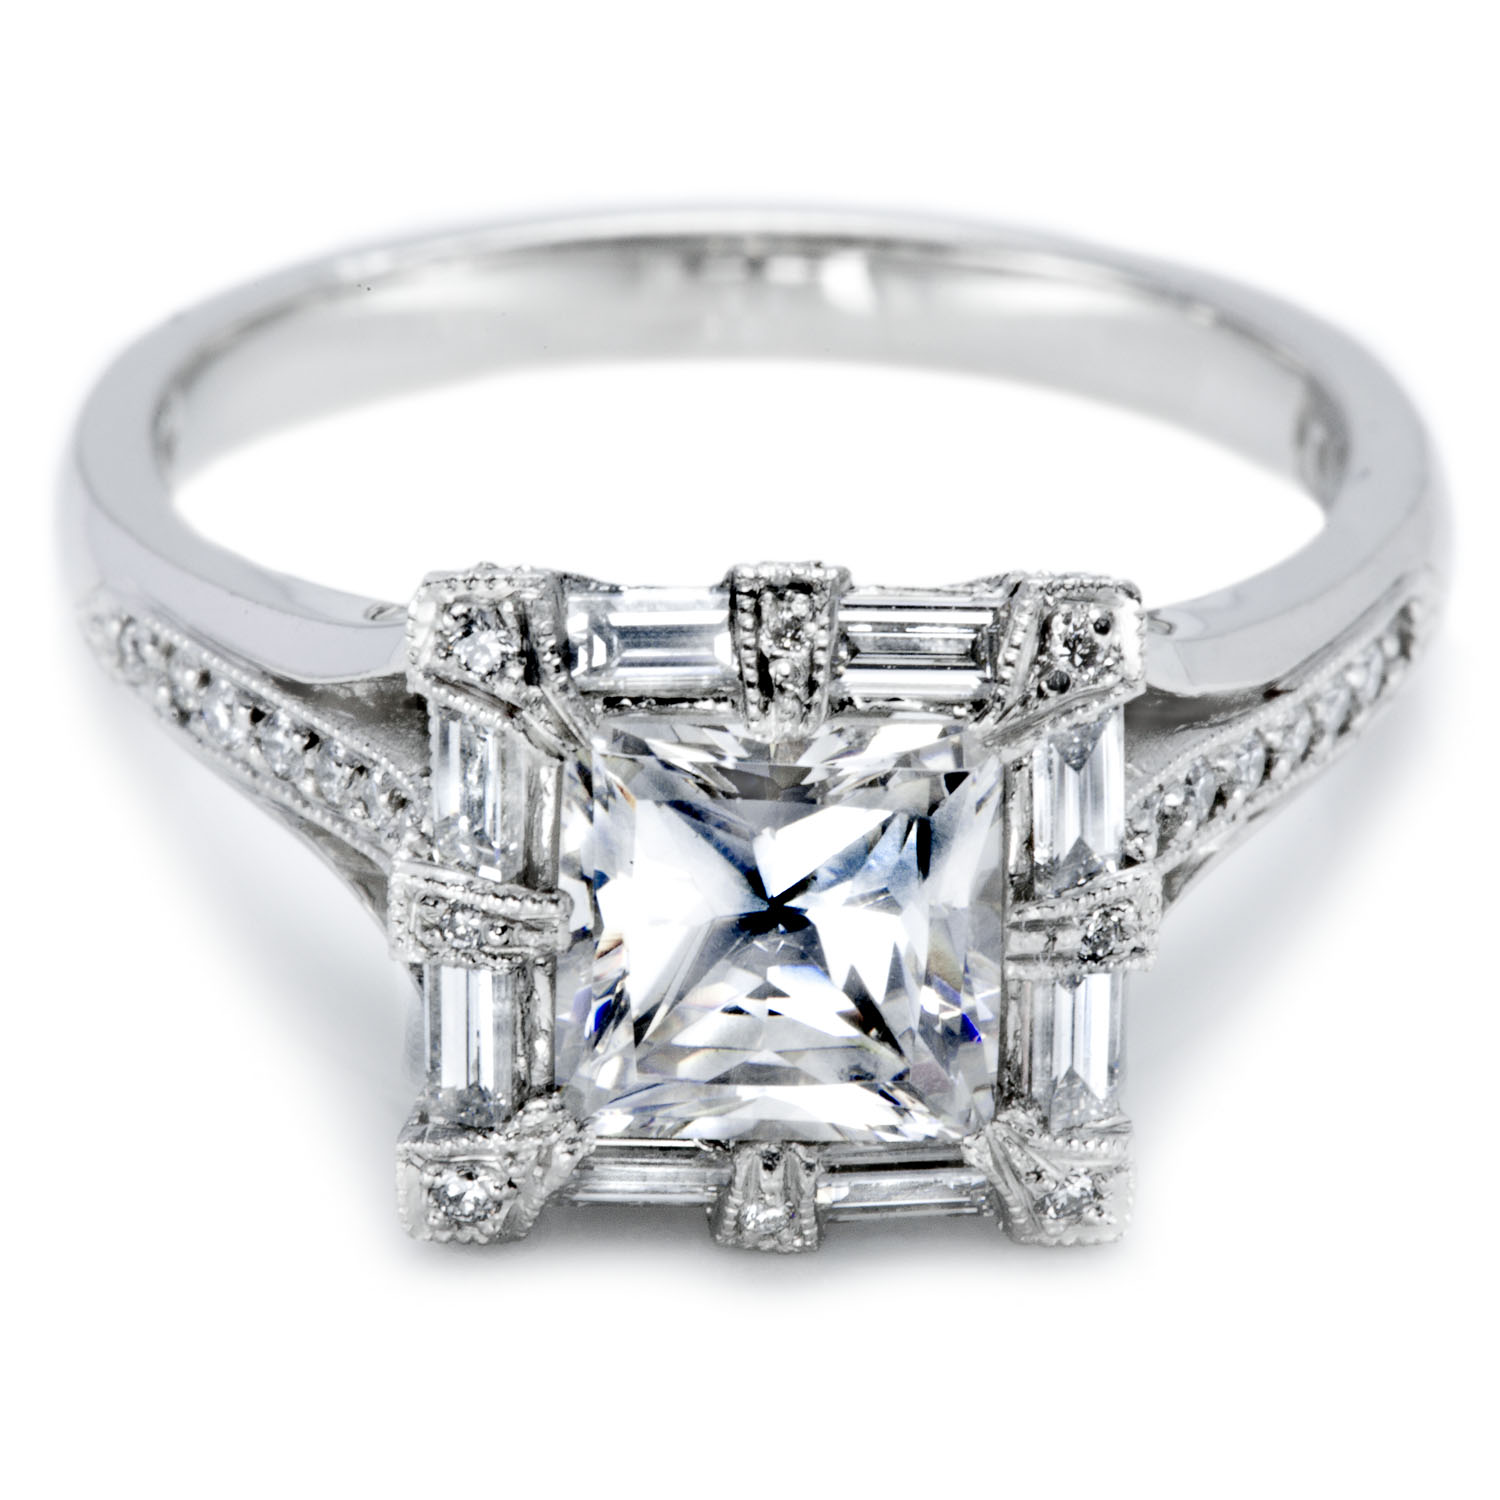 sell diamond rings - Where To Sell Wedding Ring